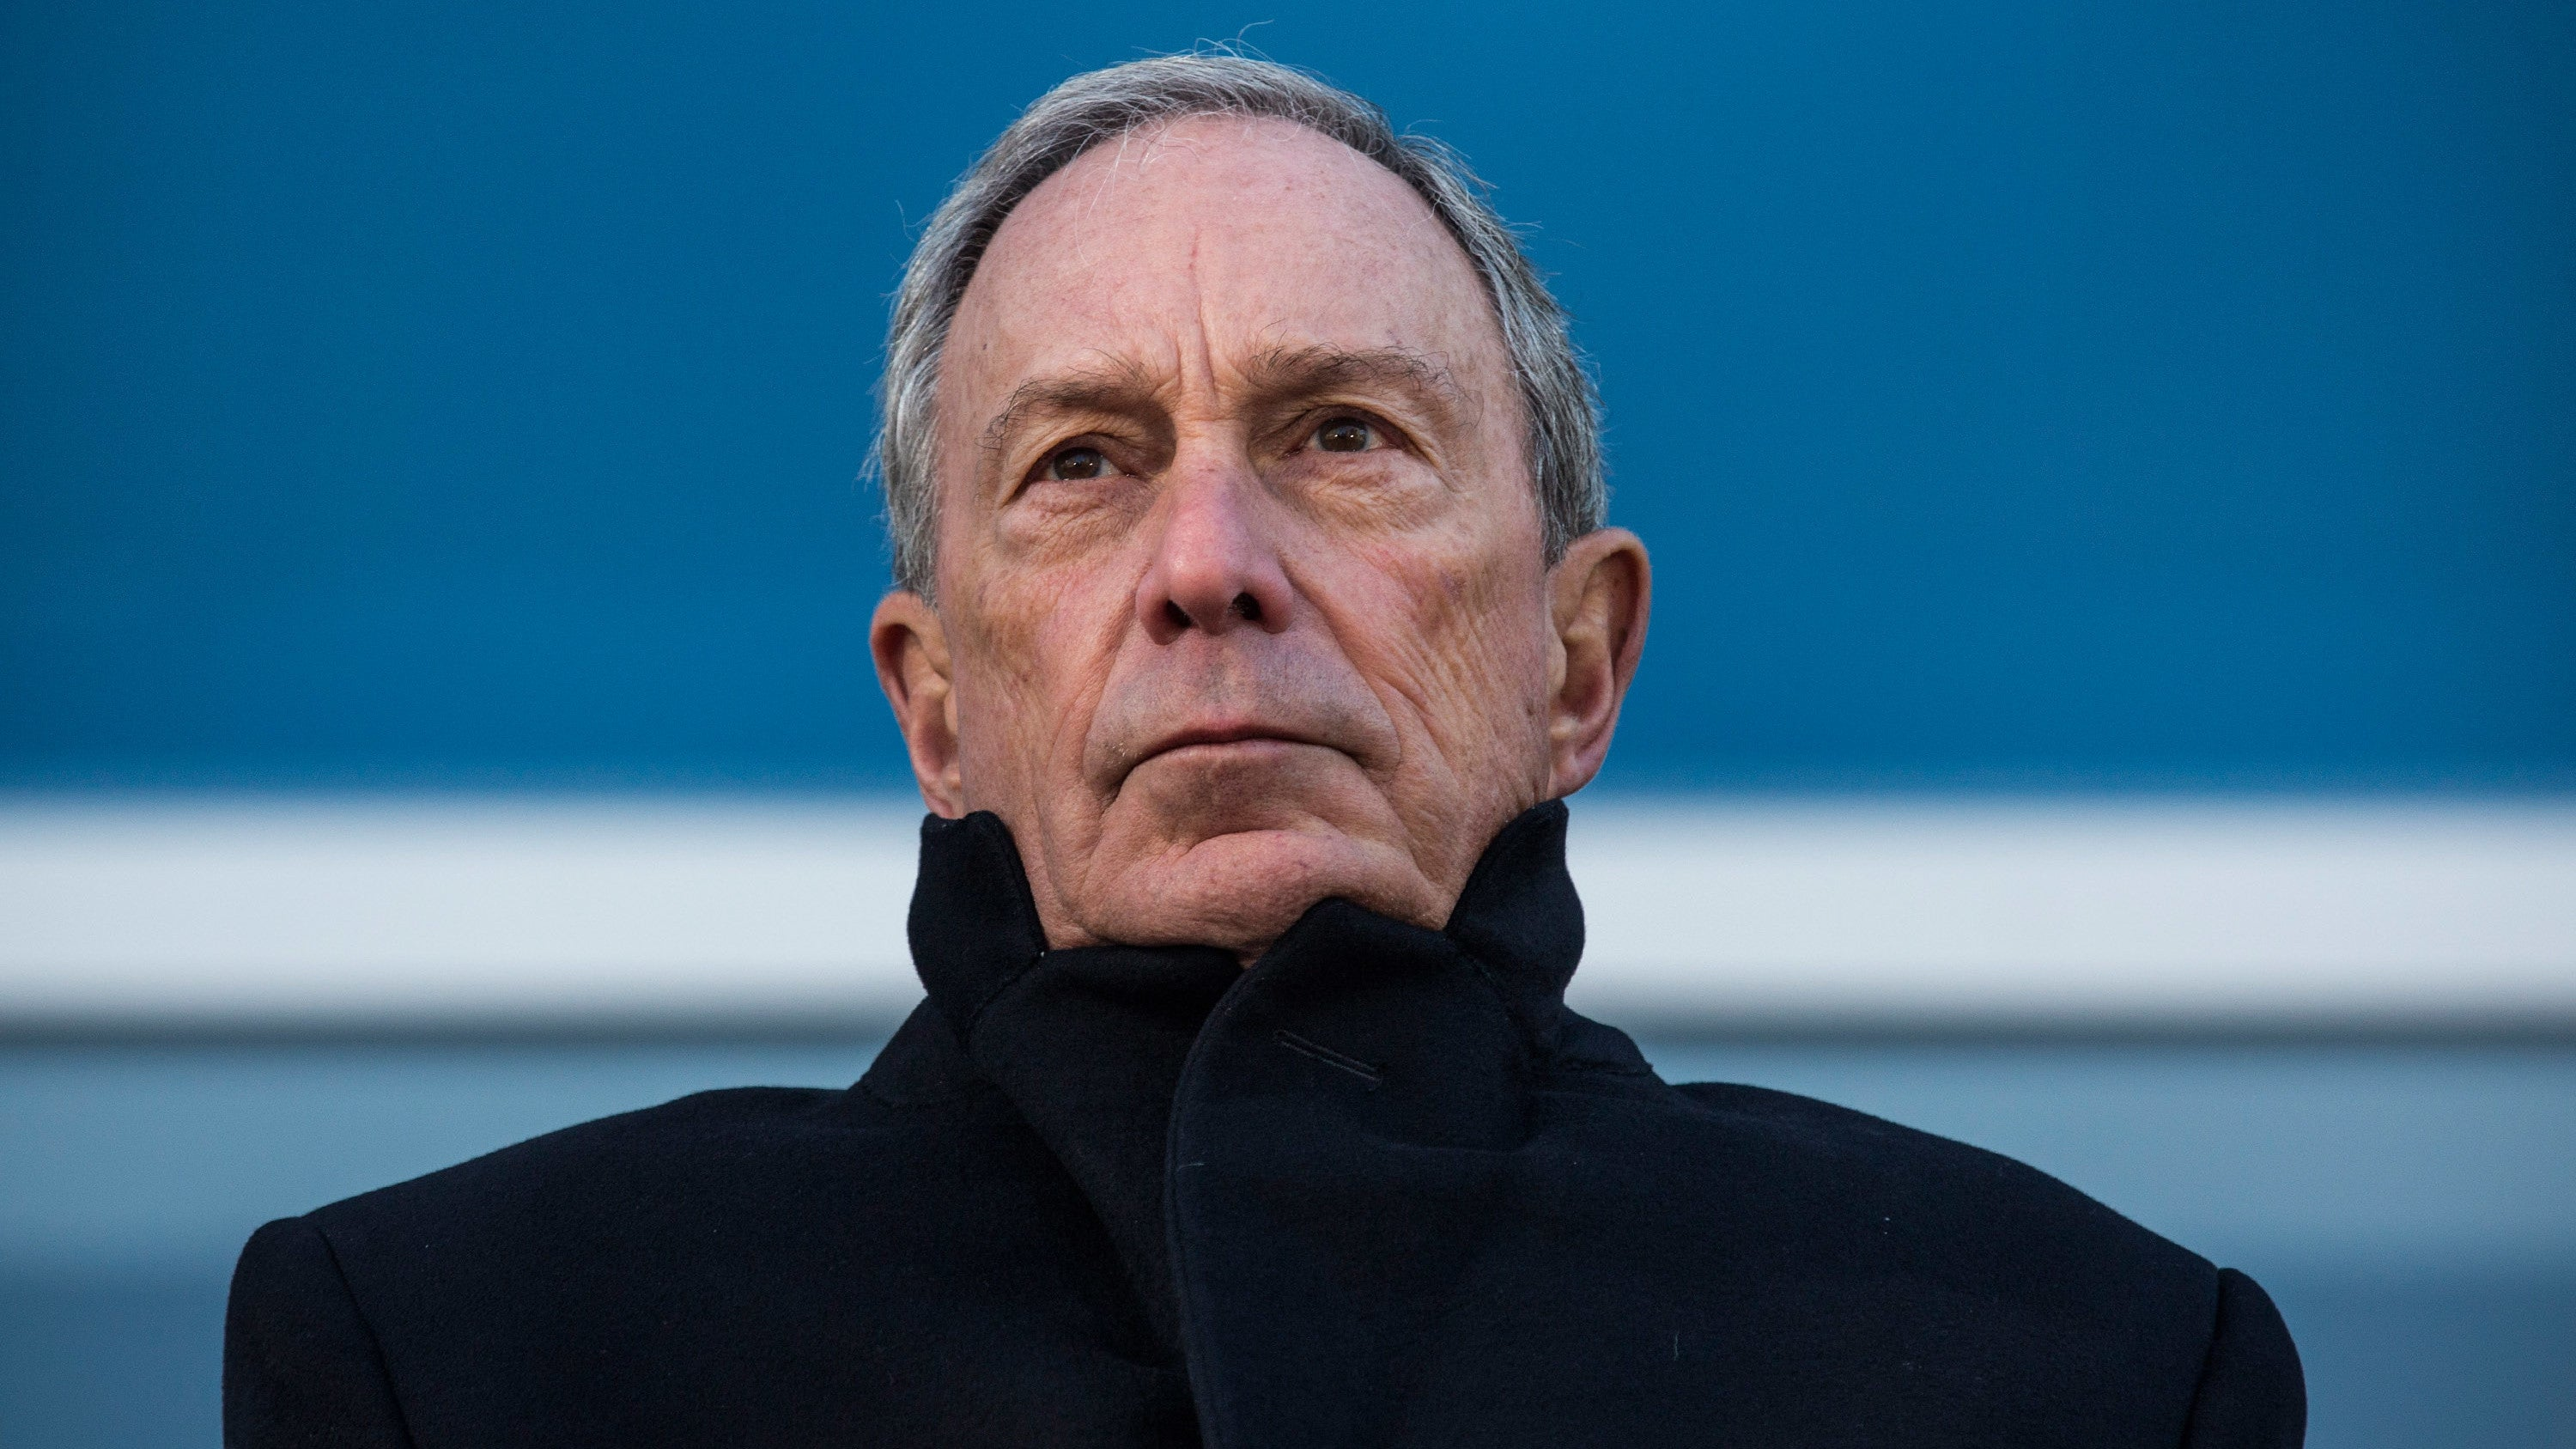 New Phone, Who This? It's Mike Bloomberg